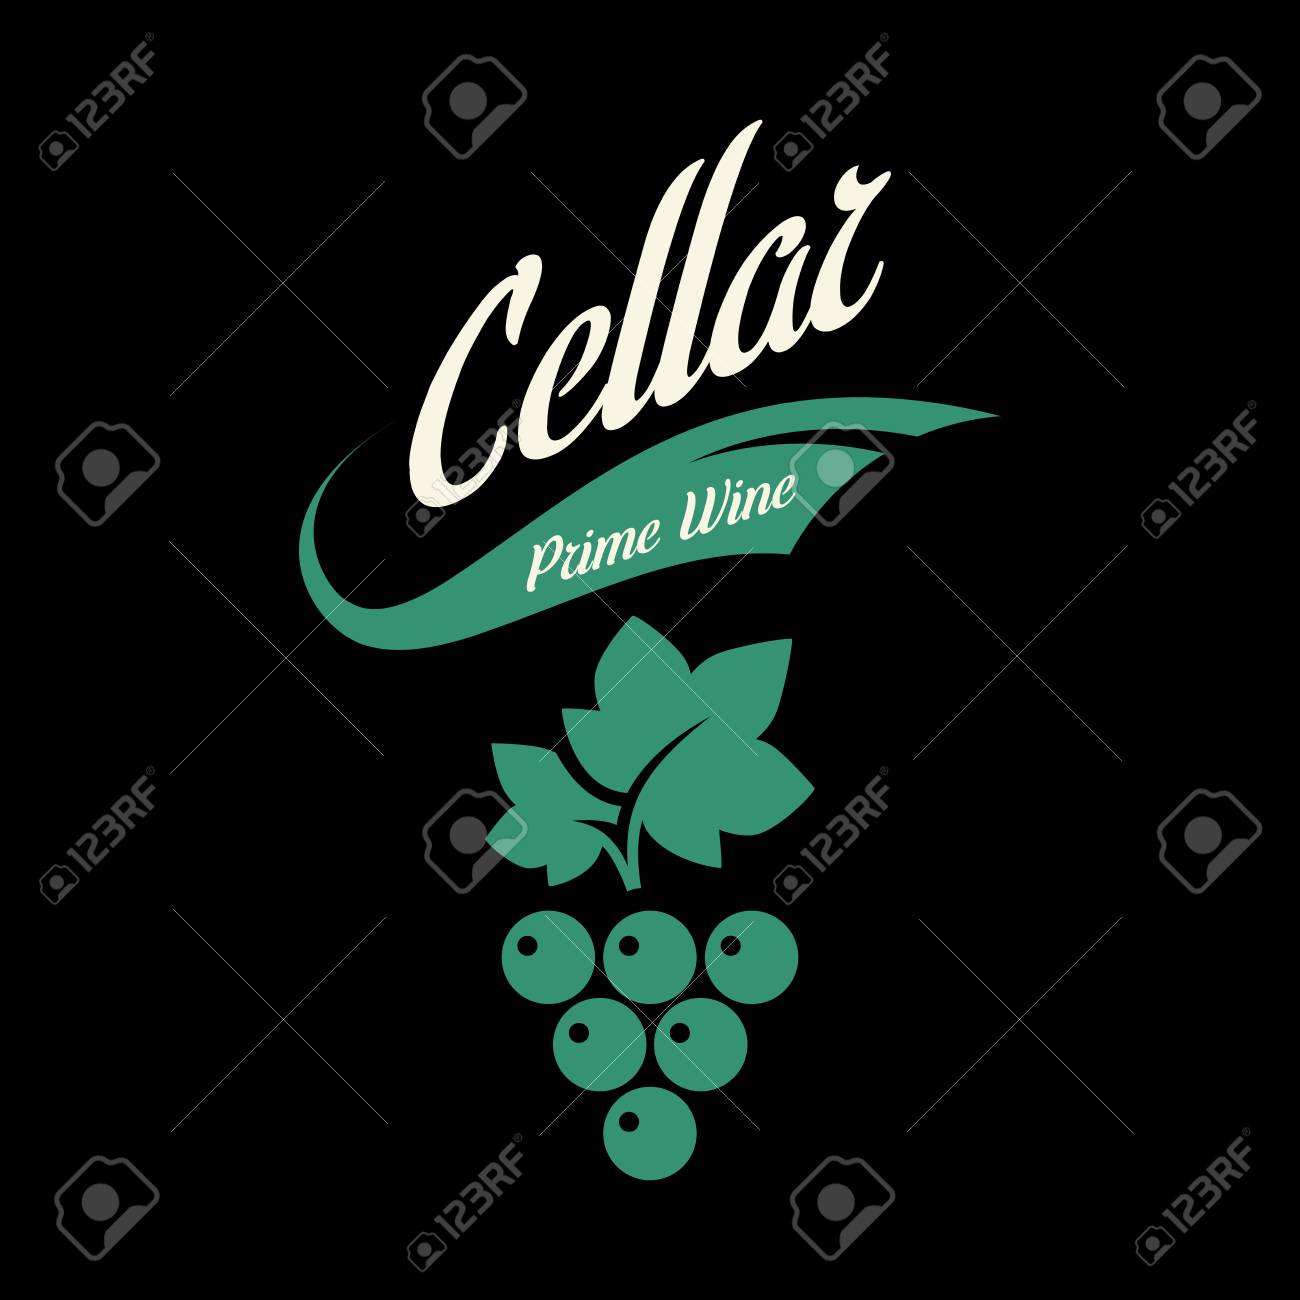 Modern wine vector logo sign for tavern, restaurant, house, shop, store, club and cellar isolated on black background. Premium quality vinery logotype illustration. Fashion brand badge design template. - 126498894